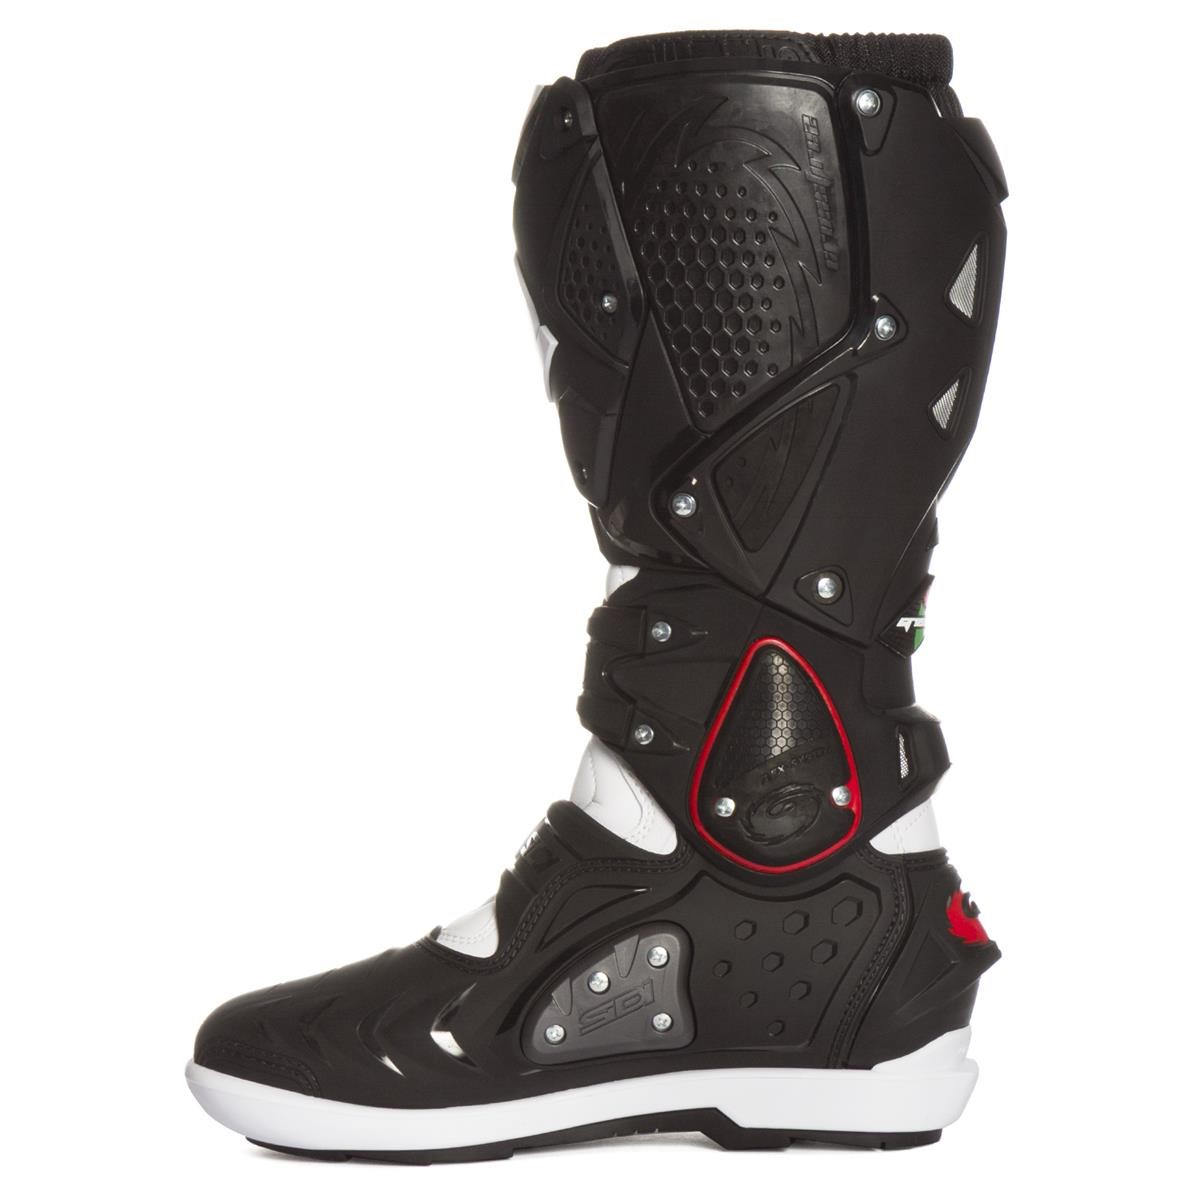 sidi mx boots crossfire 2 srs black white 2019 maciag offroad. Black Bedroom Furniture Sets. Home Design Ideas